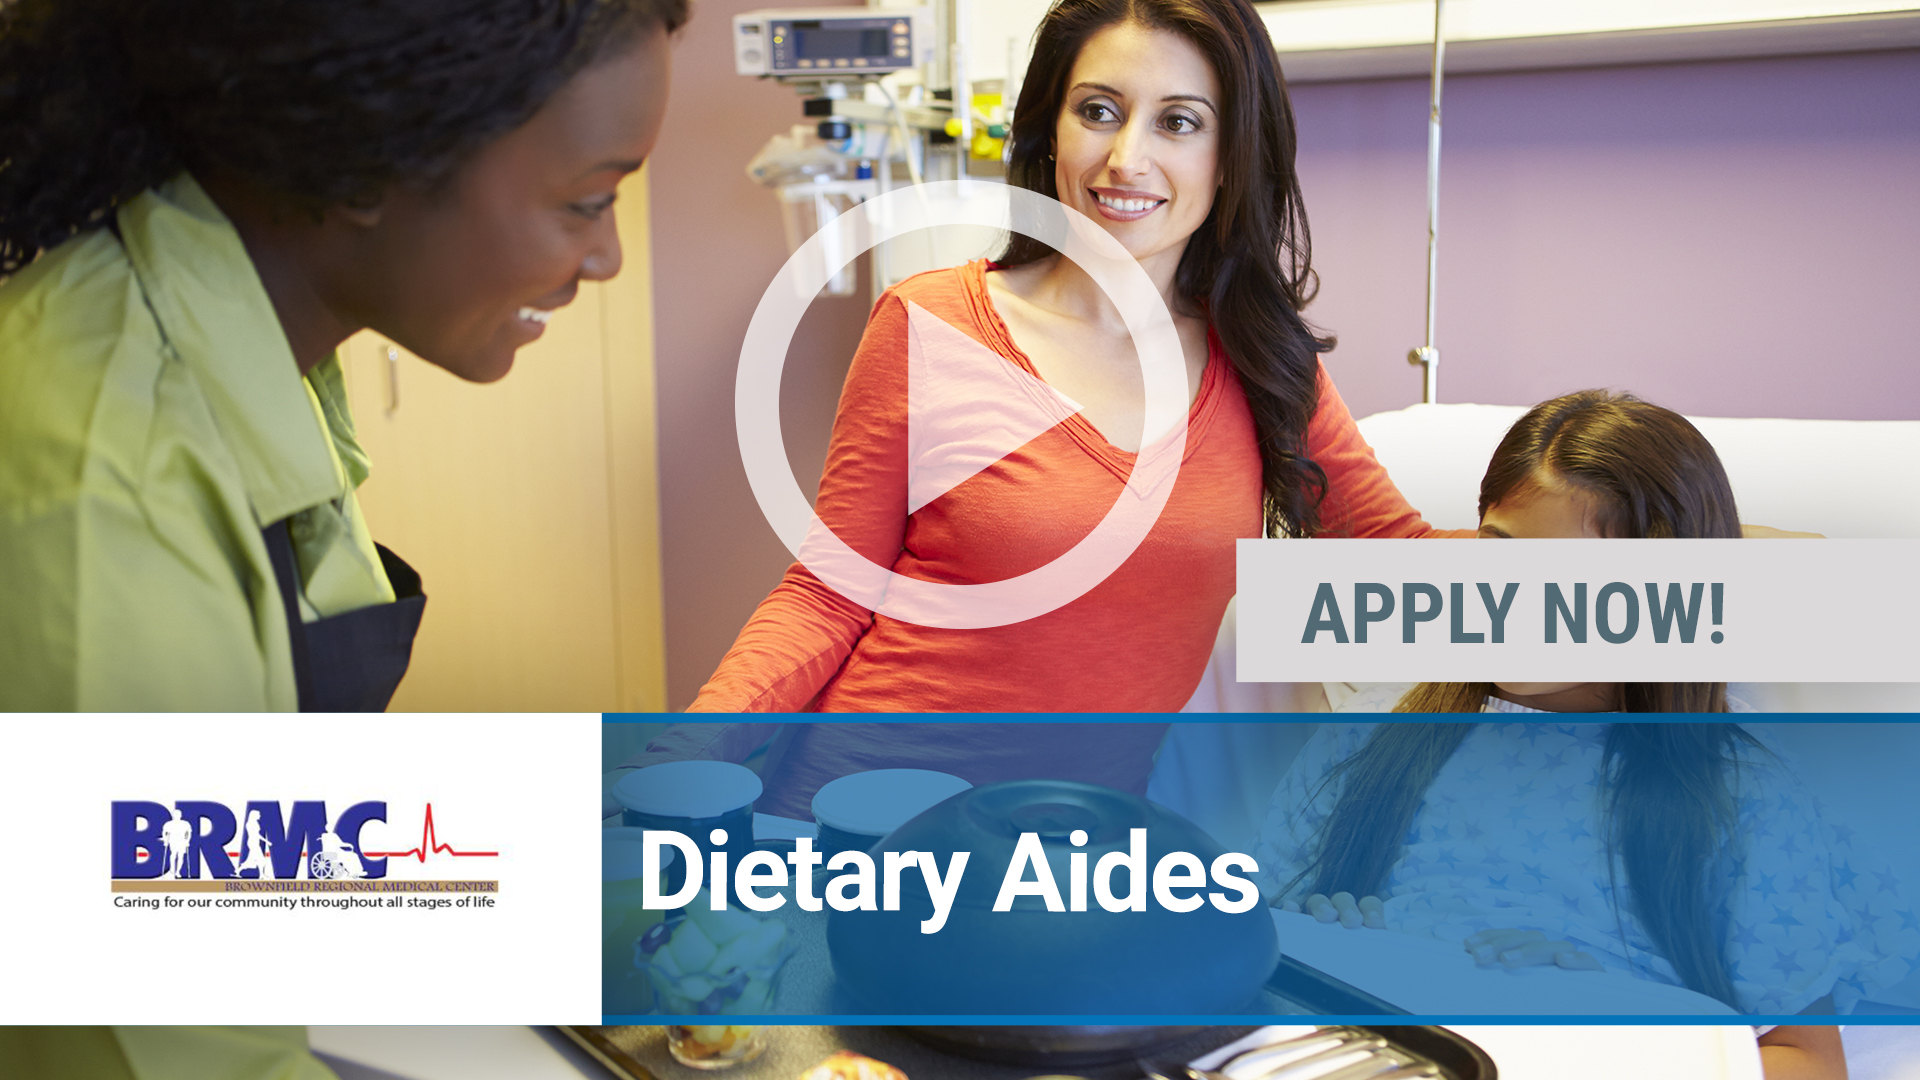 Watch our careers video for available job opening Dietary Aides in Lubbock, TX